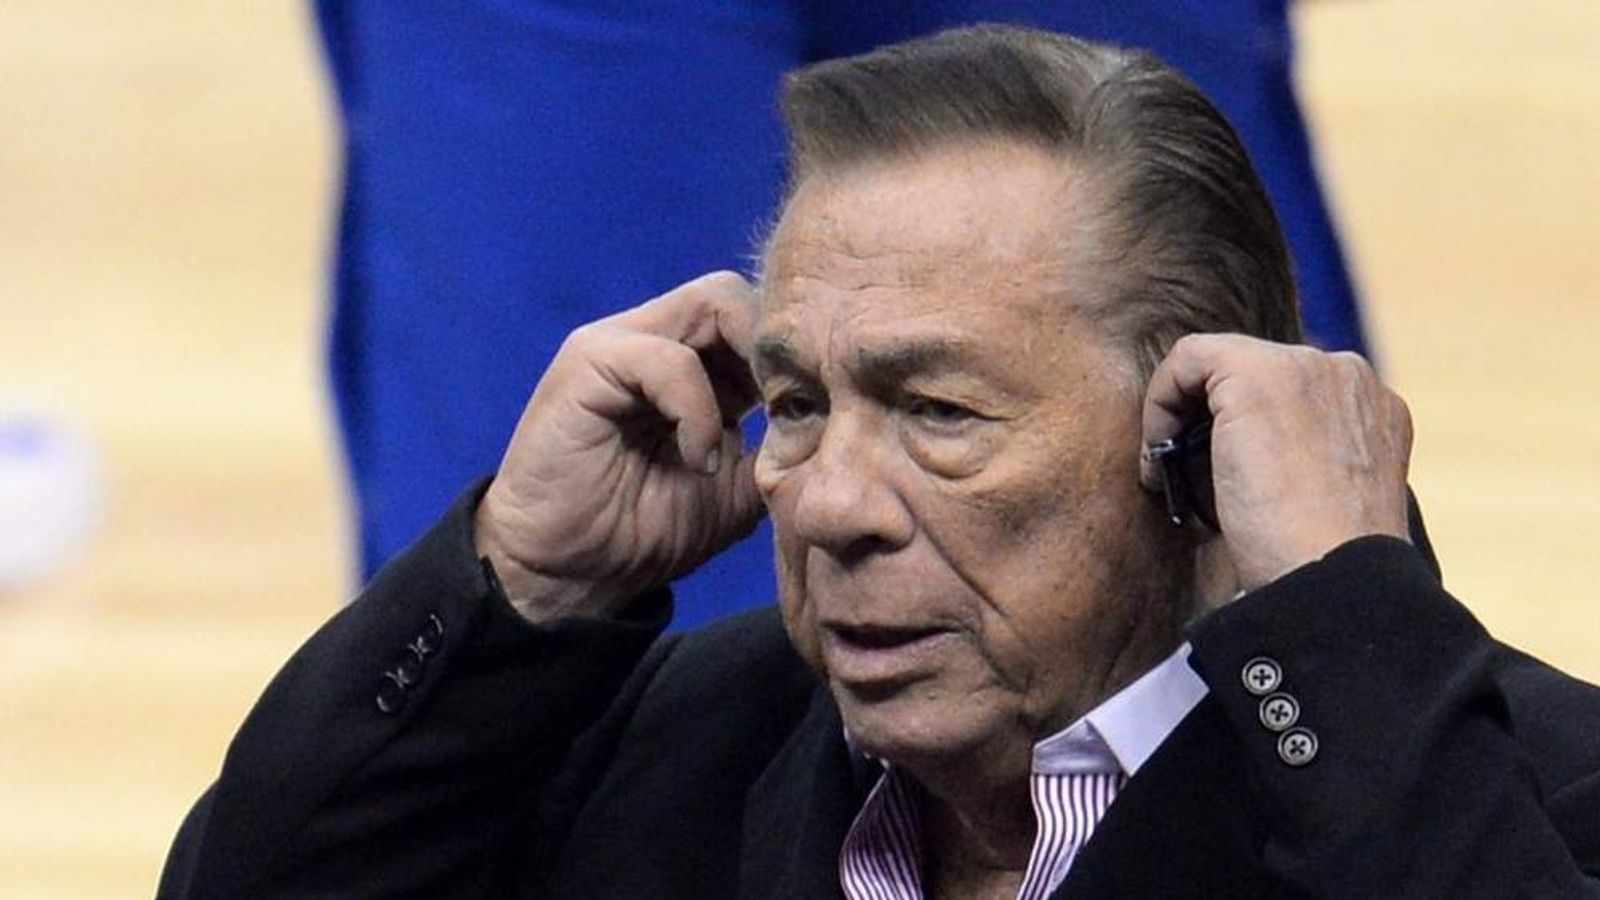 Clippers Owner Sterling Banned For Life